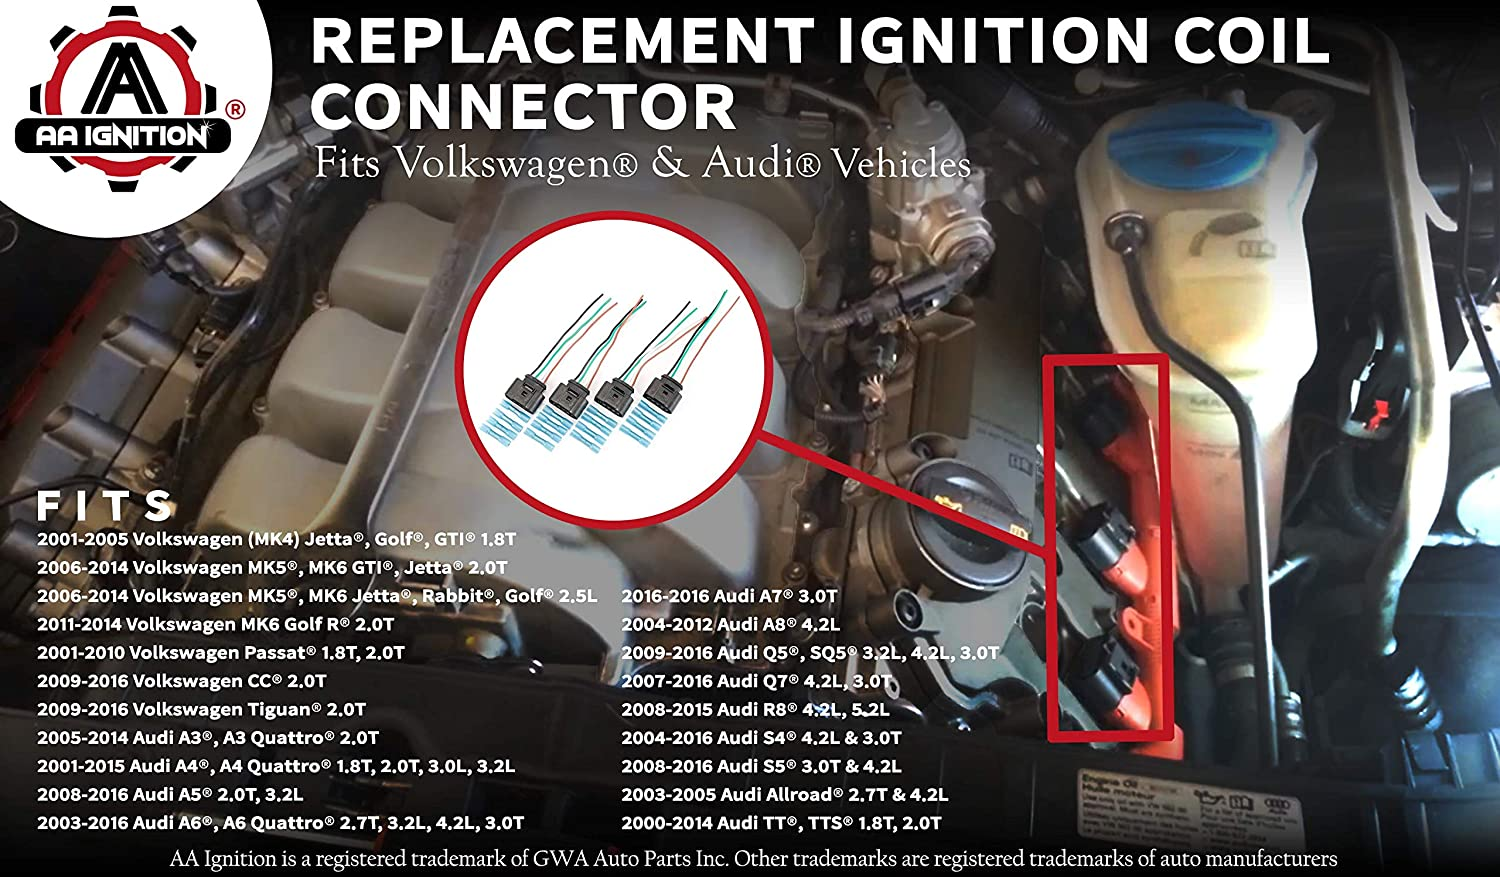 Amazon.com: Ignition Coil, Coil Pack Replacement Connector - Harness on 2006 hummer h2 wiring diagram, audi a4 radio wiring diagram, 2006 chrysler pt cruiser wiring diagram, 2006 gmc yukon wiring diagram, 2010 audi a5 wiring diagram, 2006 volvo xc90 wiring diagram, 2006 kia amanti wiring diagram, 2006 ford crown victoria wiring diagram, 2002 audi a4 wiring diagram, 2006 dodge viper wiring diagram, 2006 nissan quest wiring diagram, 2011 hyundai sonata wiring diagram, 2003 audi a4 wiring diagram, 2007 audi a4 wiring diagram, 2006 subaru tribeca wiring diagram, 2006 honda element wiring diagram, 2006 honda ridgeline wiring diagram, 2006 chrysler sebring wiring diagram, audi a4 stereo wiring diagram, 2006 hyundai tiburon wiring diagram,